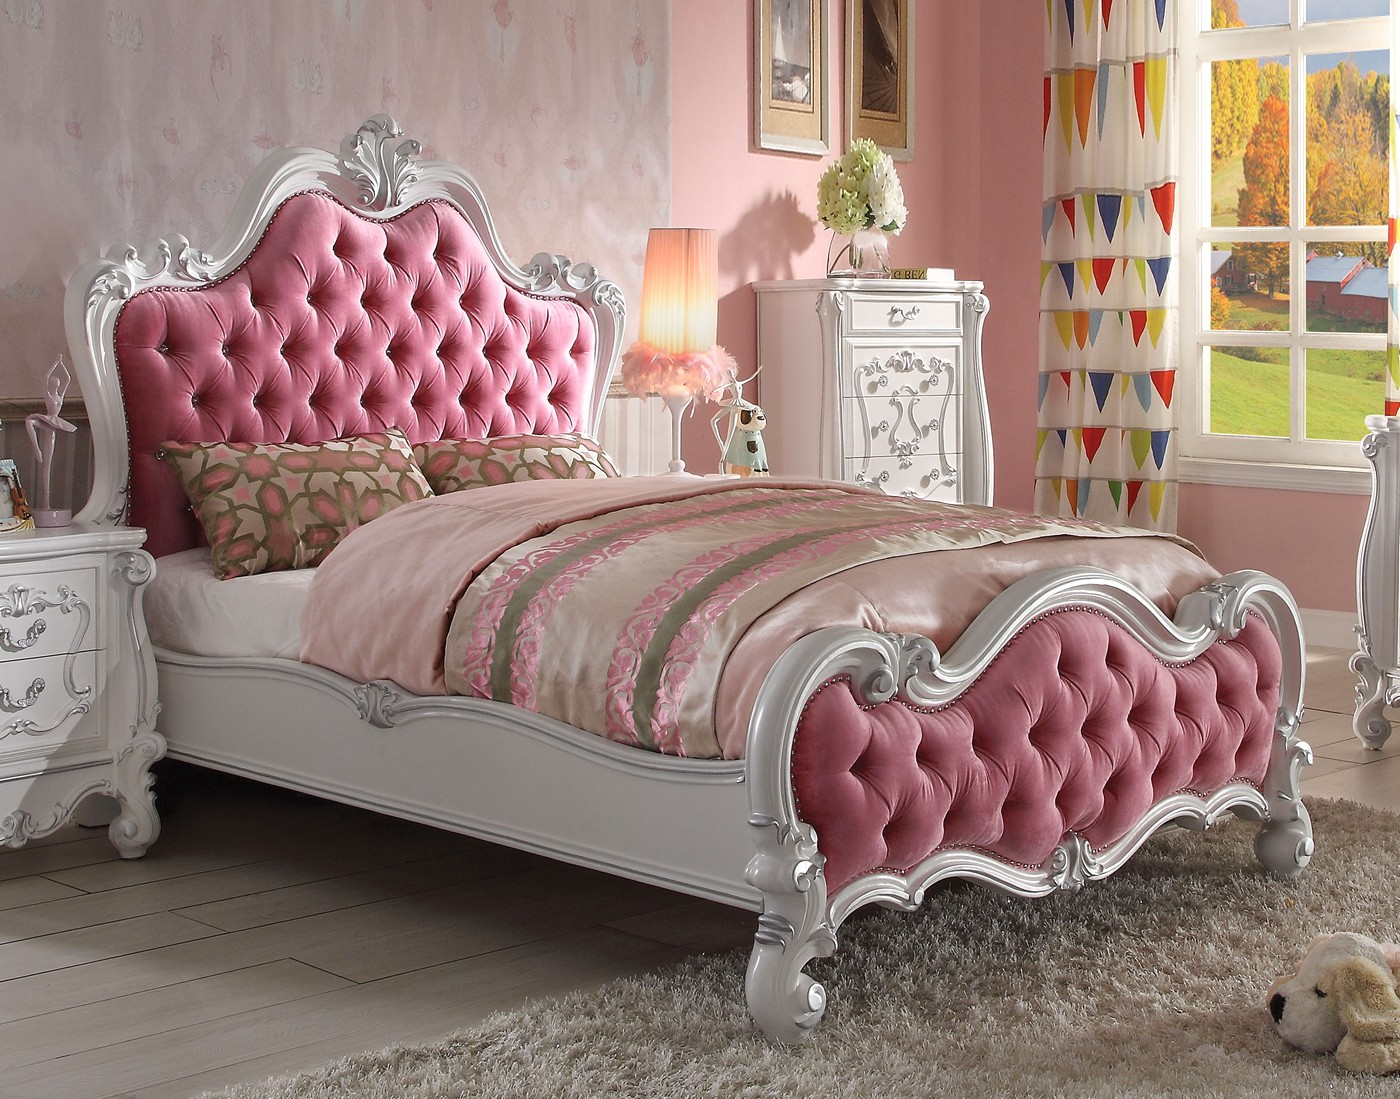 White Queen Bedroom Set Versailles Kids Victorian 4 Pc Pink Fabric Full Bed Set W